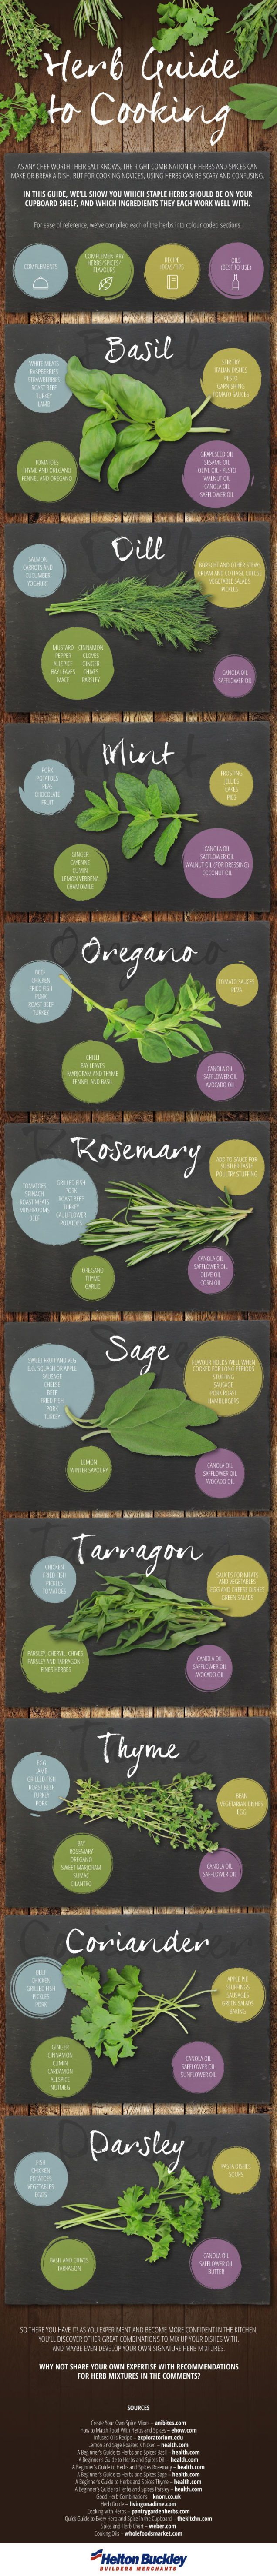 Herbs Guide to Cooking(Infographic)